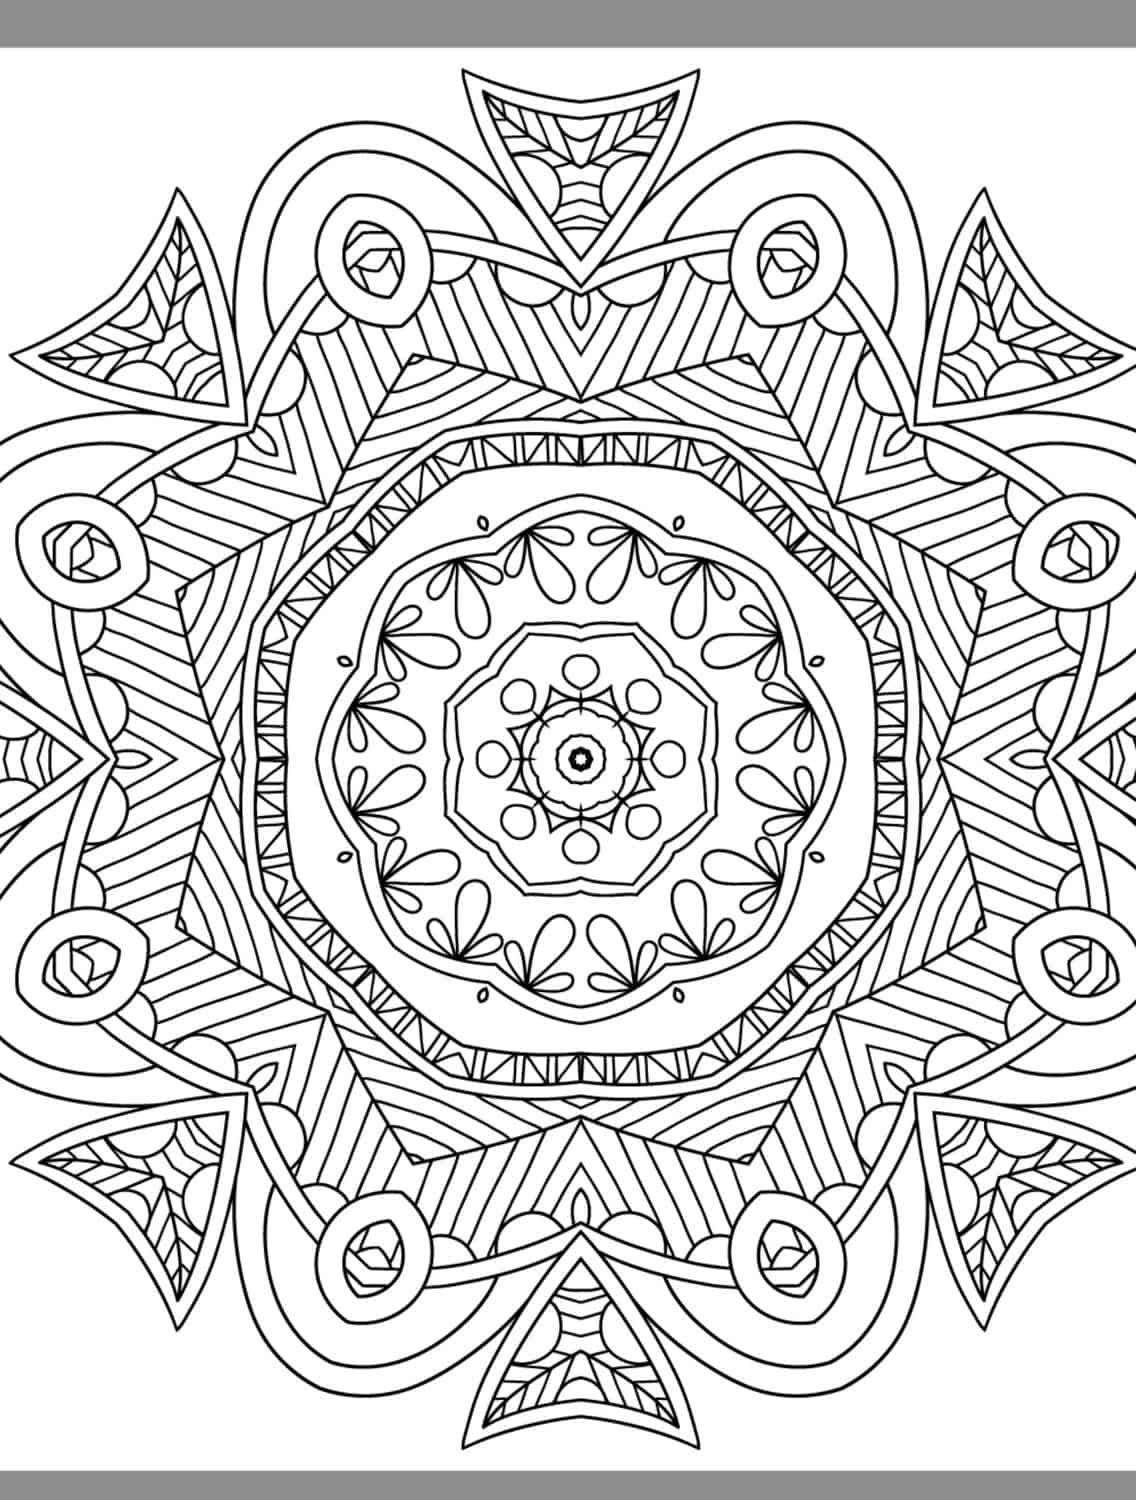 24 more free printable adult coloring pages page 25 of for Free adult online coloring pages